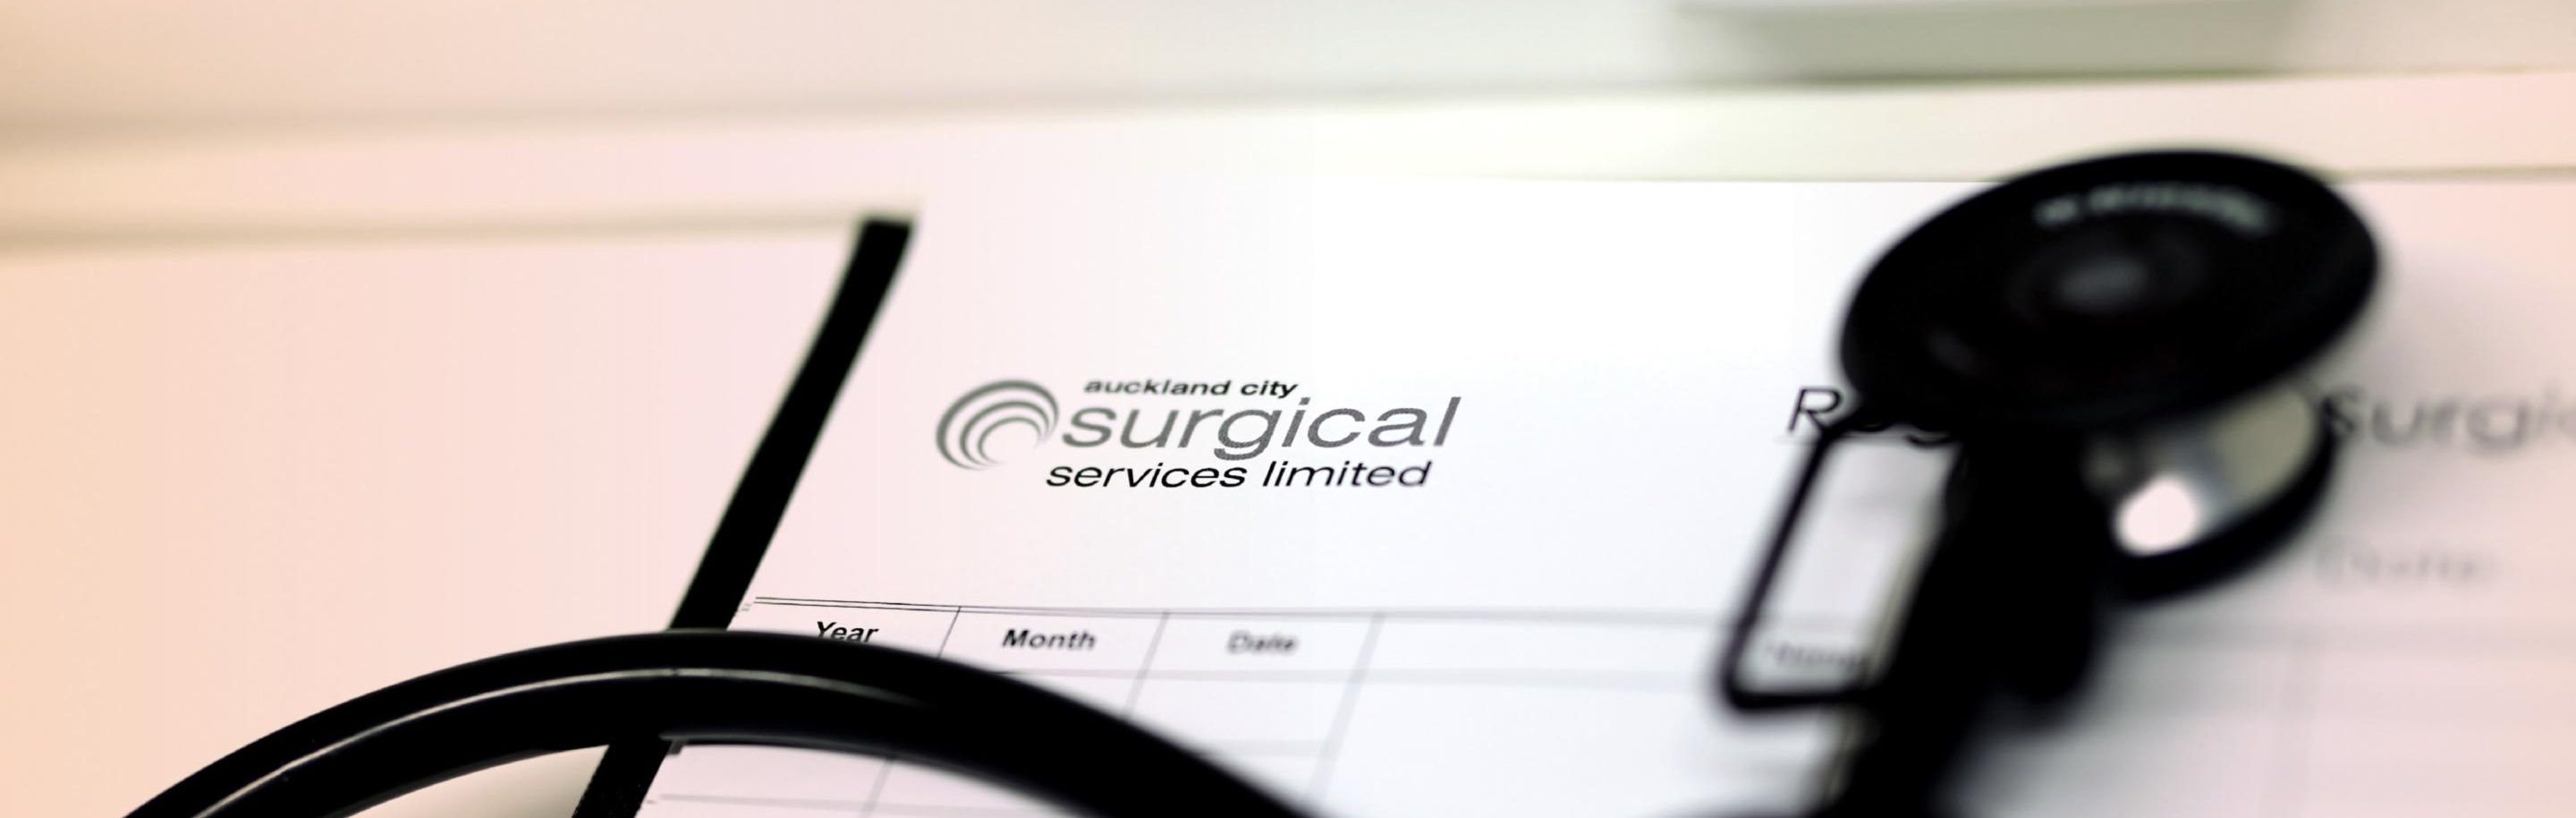 Auckland City Surgical Services - patient information